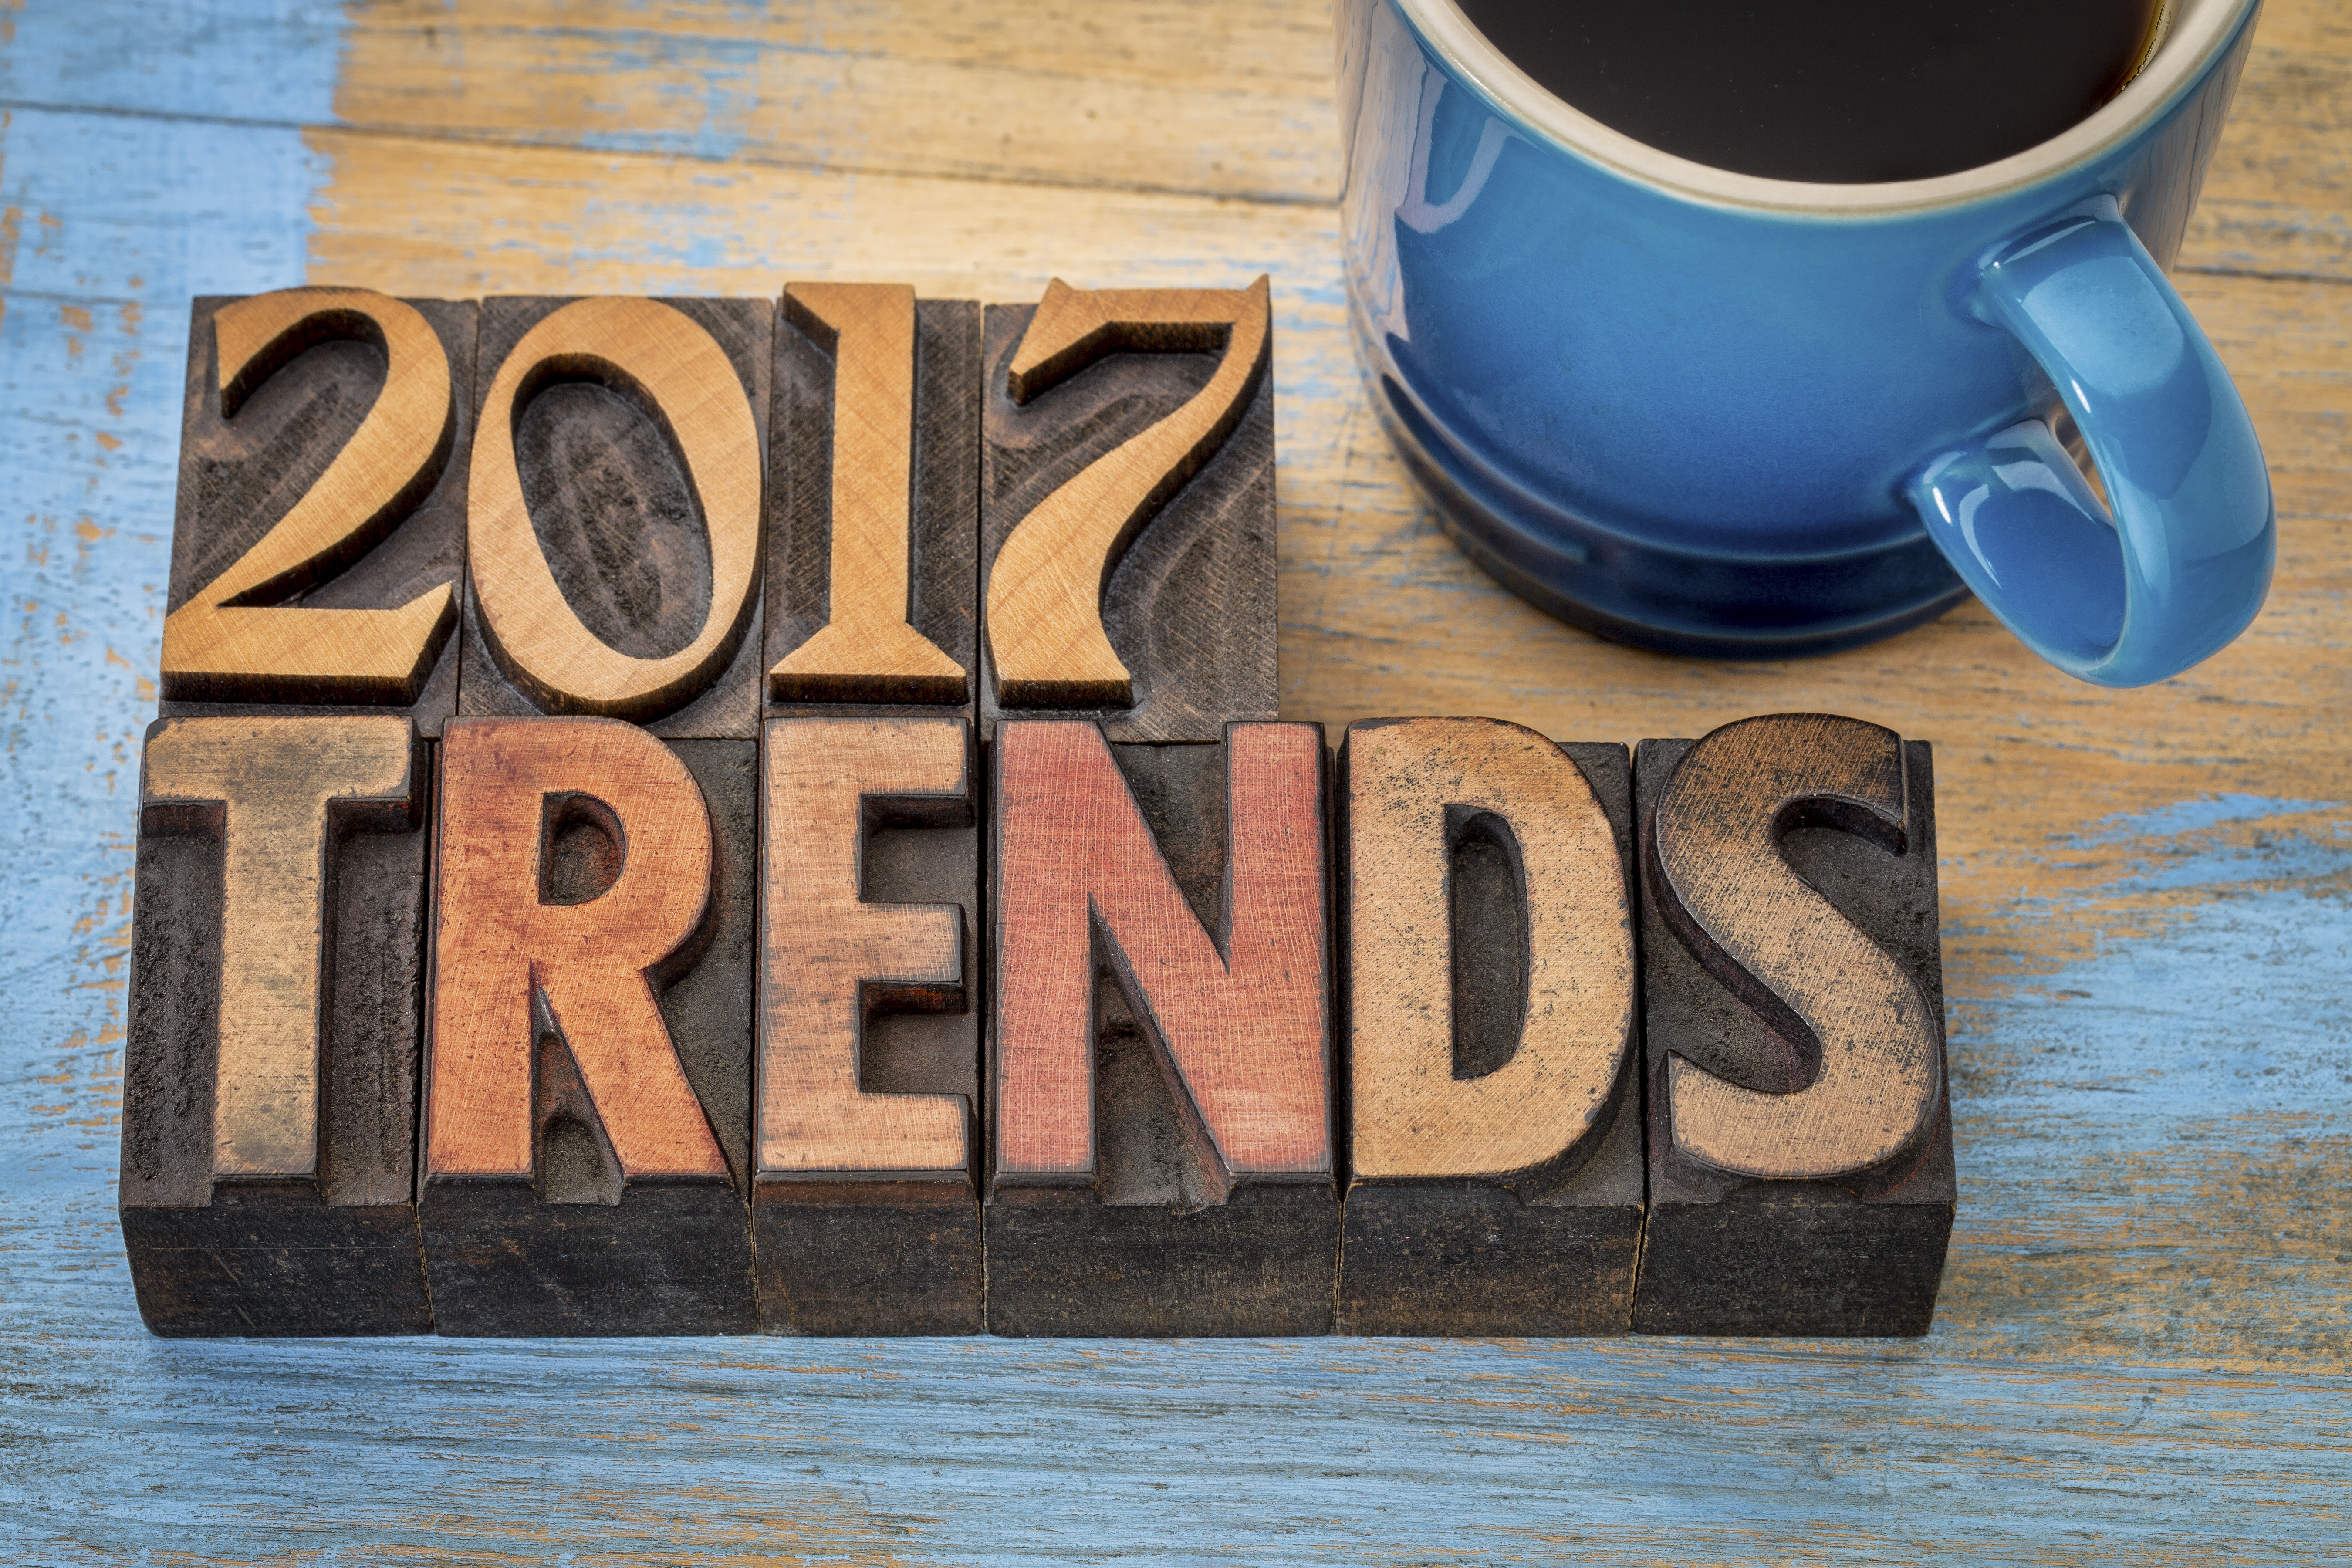 161220-2017-trends-image